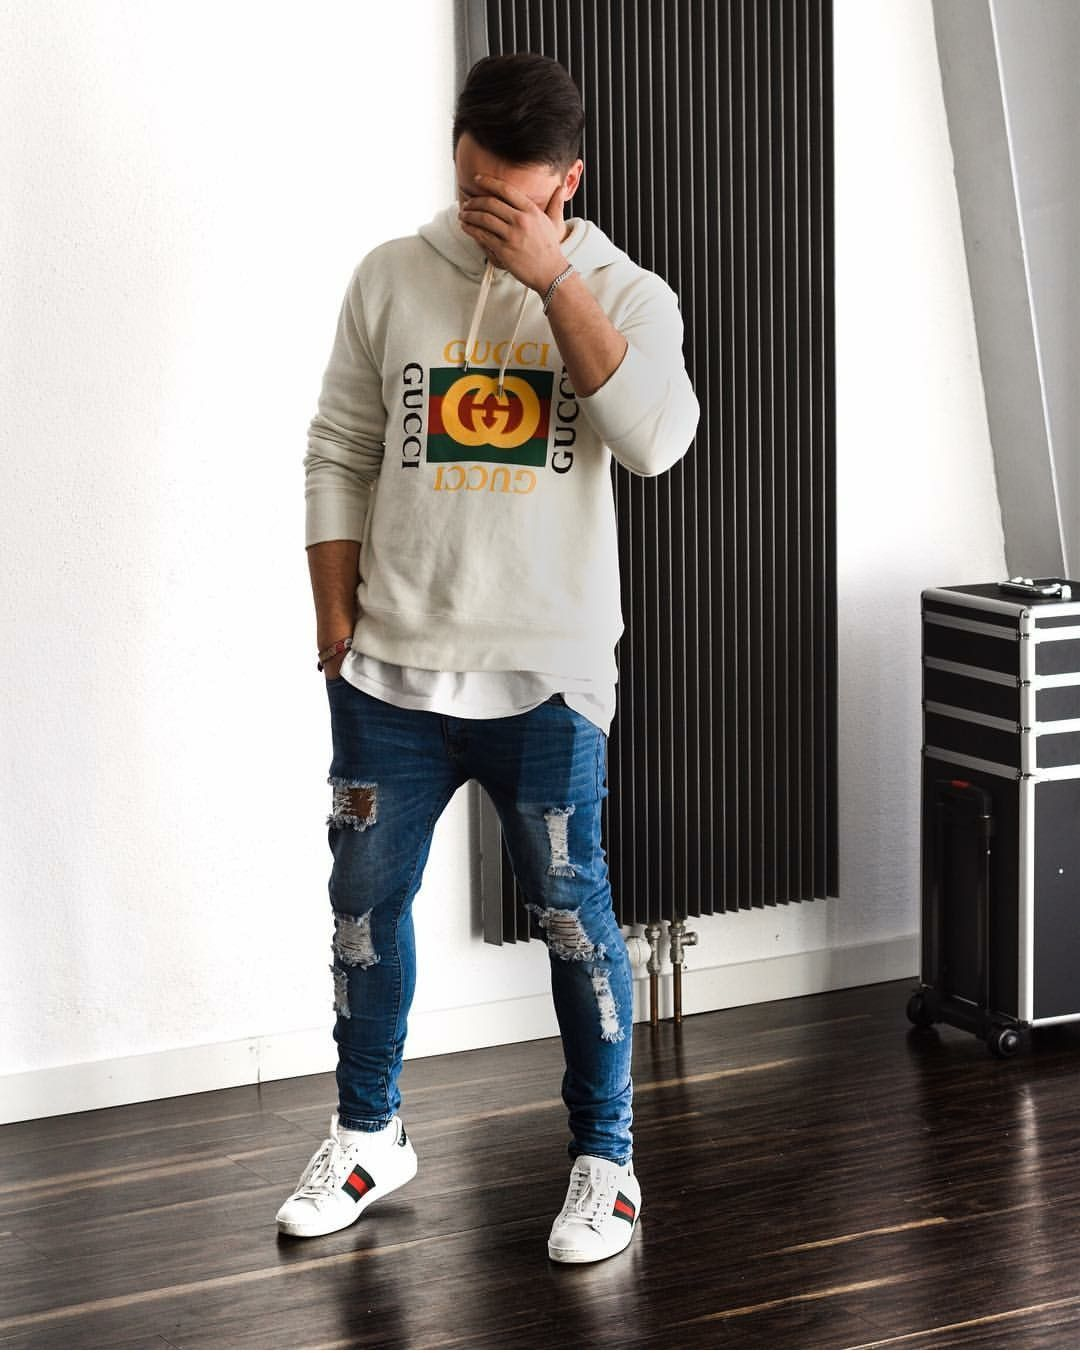 Gucci Distressed Jeans Leather Jacket Outfit Men Mens Outfits Sneakers Outfit Men